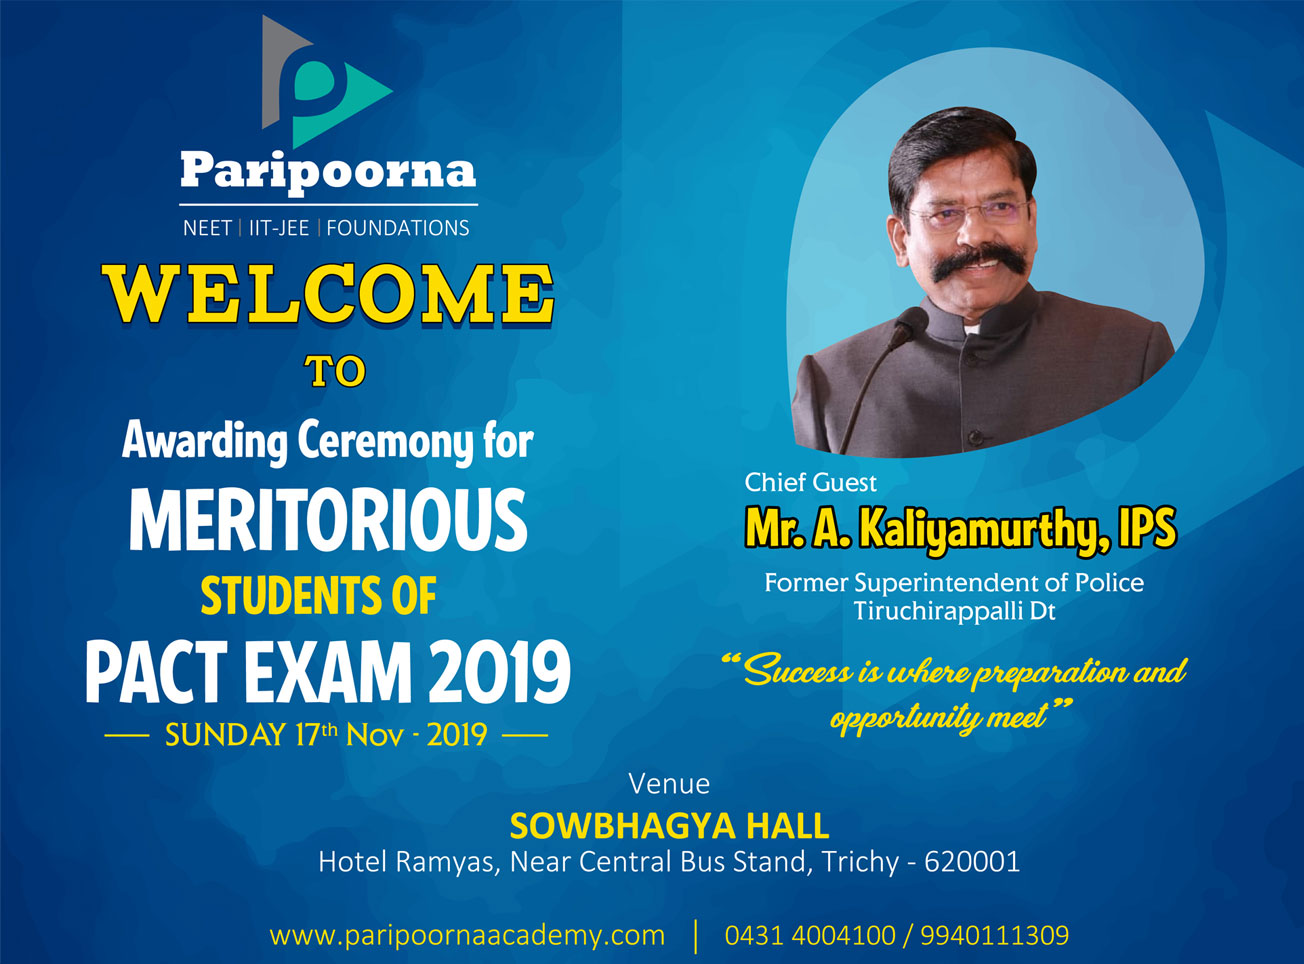 Awarding Ceremony for Meritorious Students of PACT EXAM 2019